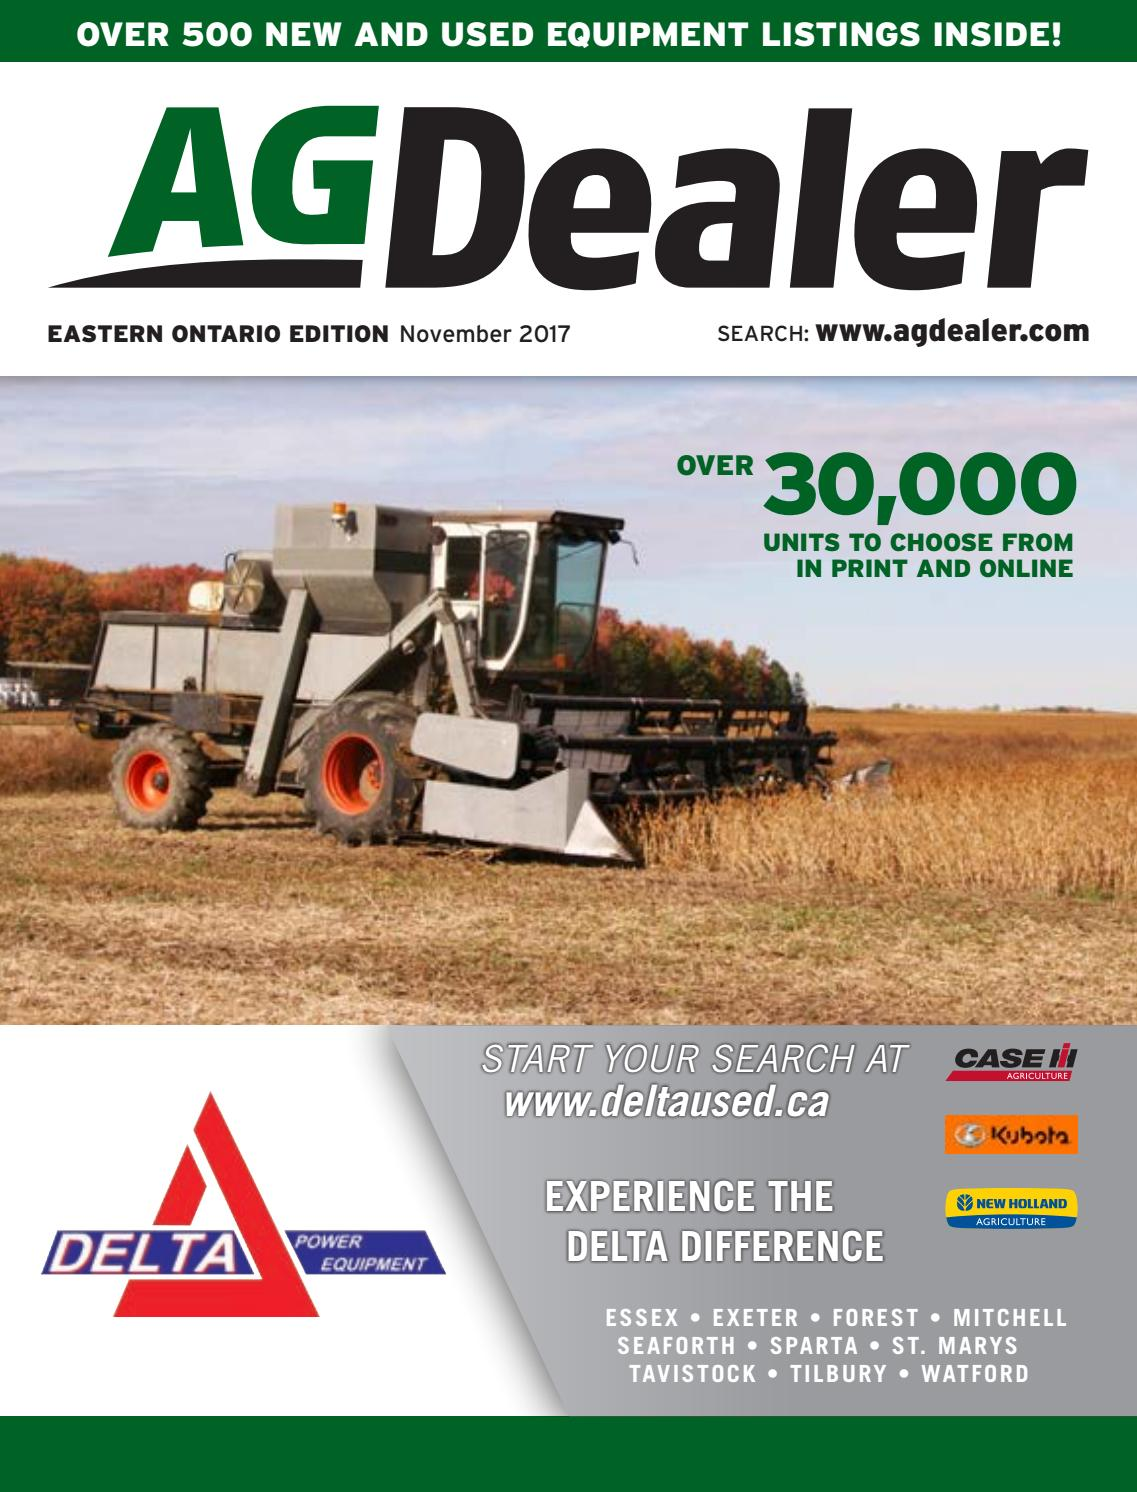 AGDealer Eastern Ontario Edition, October 30, 2017 by Farm